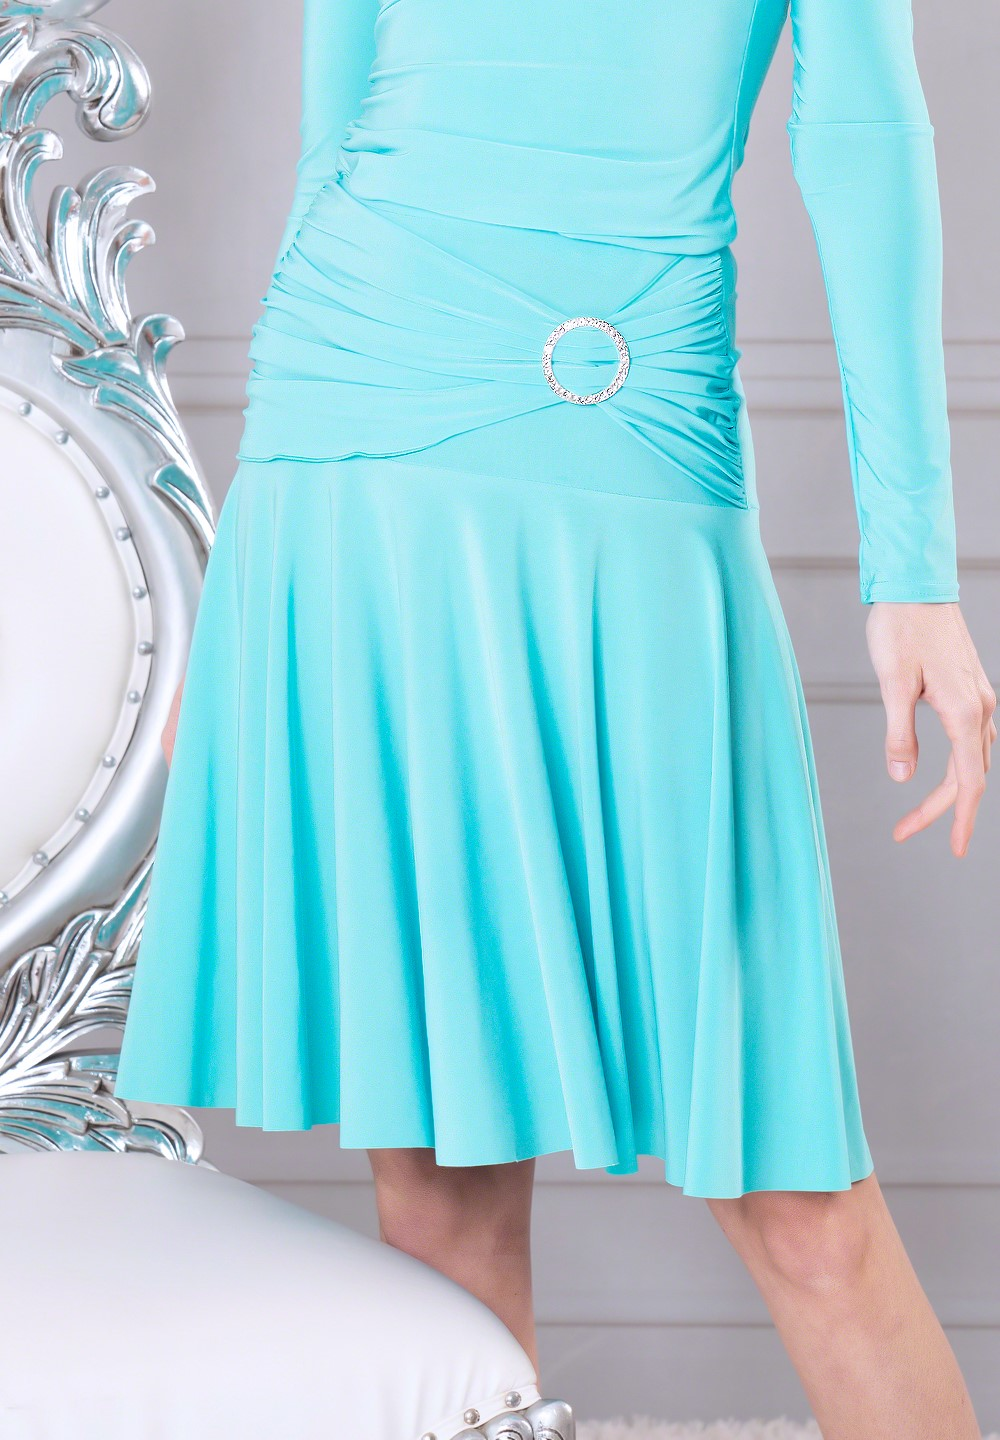 0cce6564a Dance America S909 - Simple Skirt with Stoned Drop Yoke. $79.00. 1 / 2